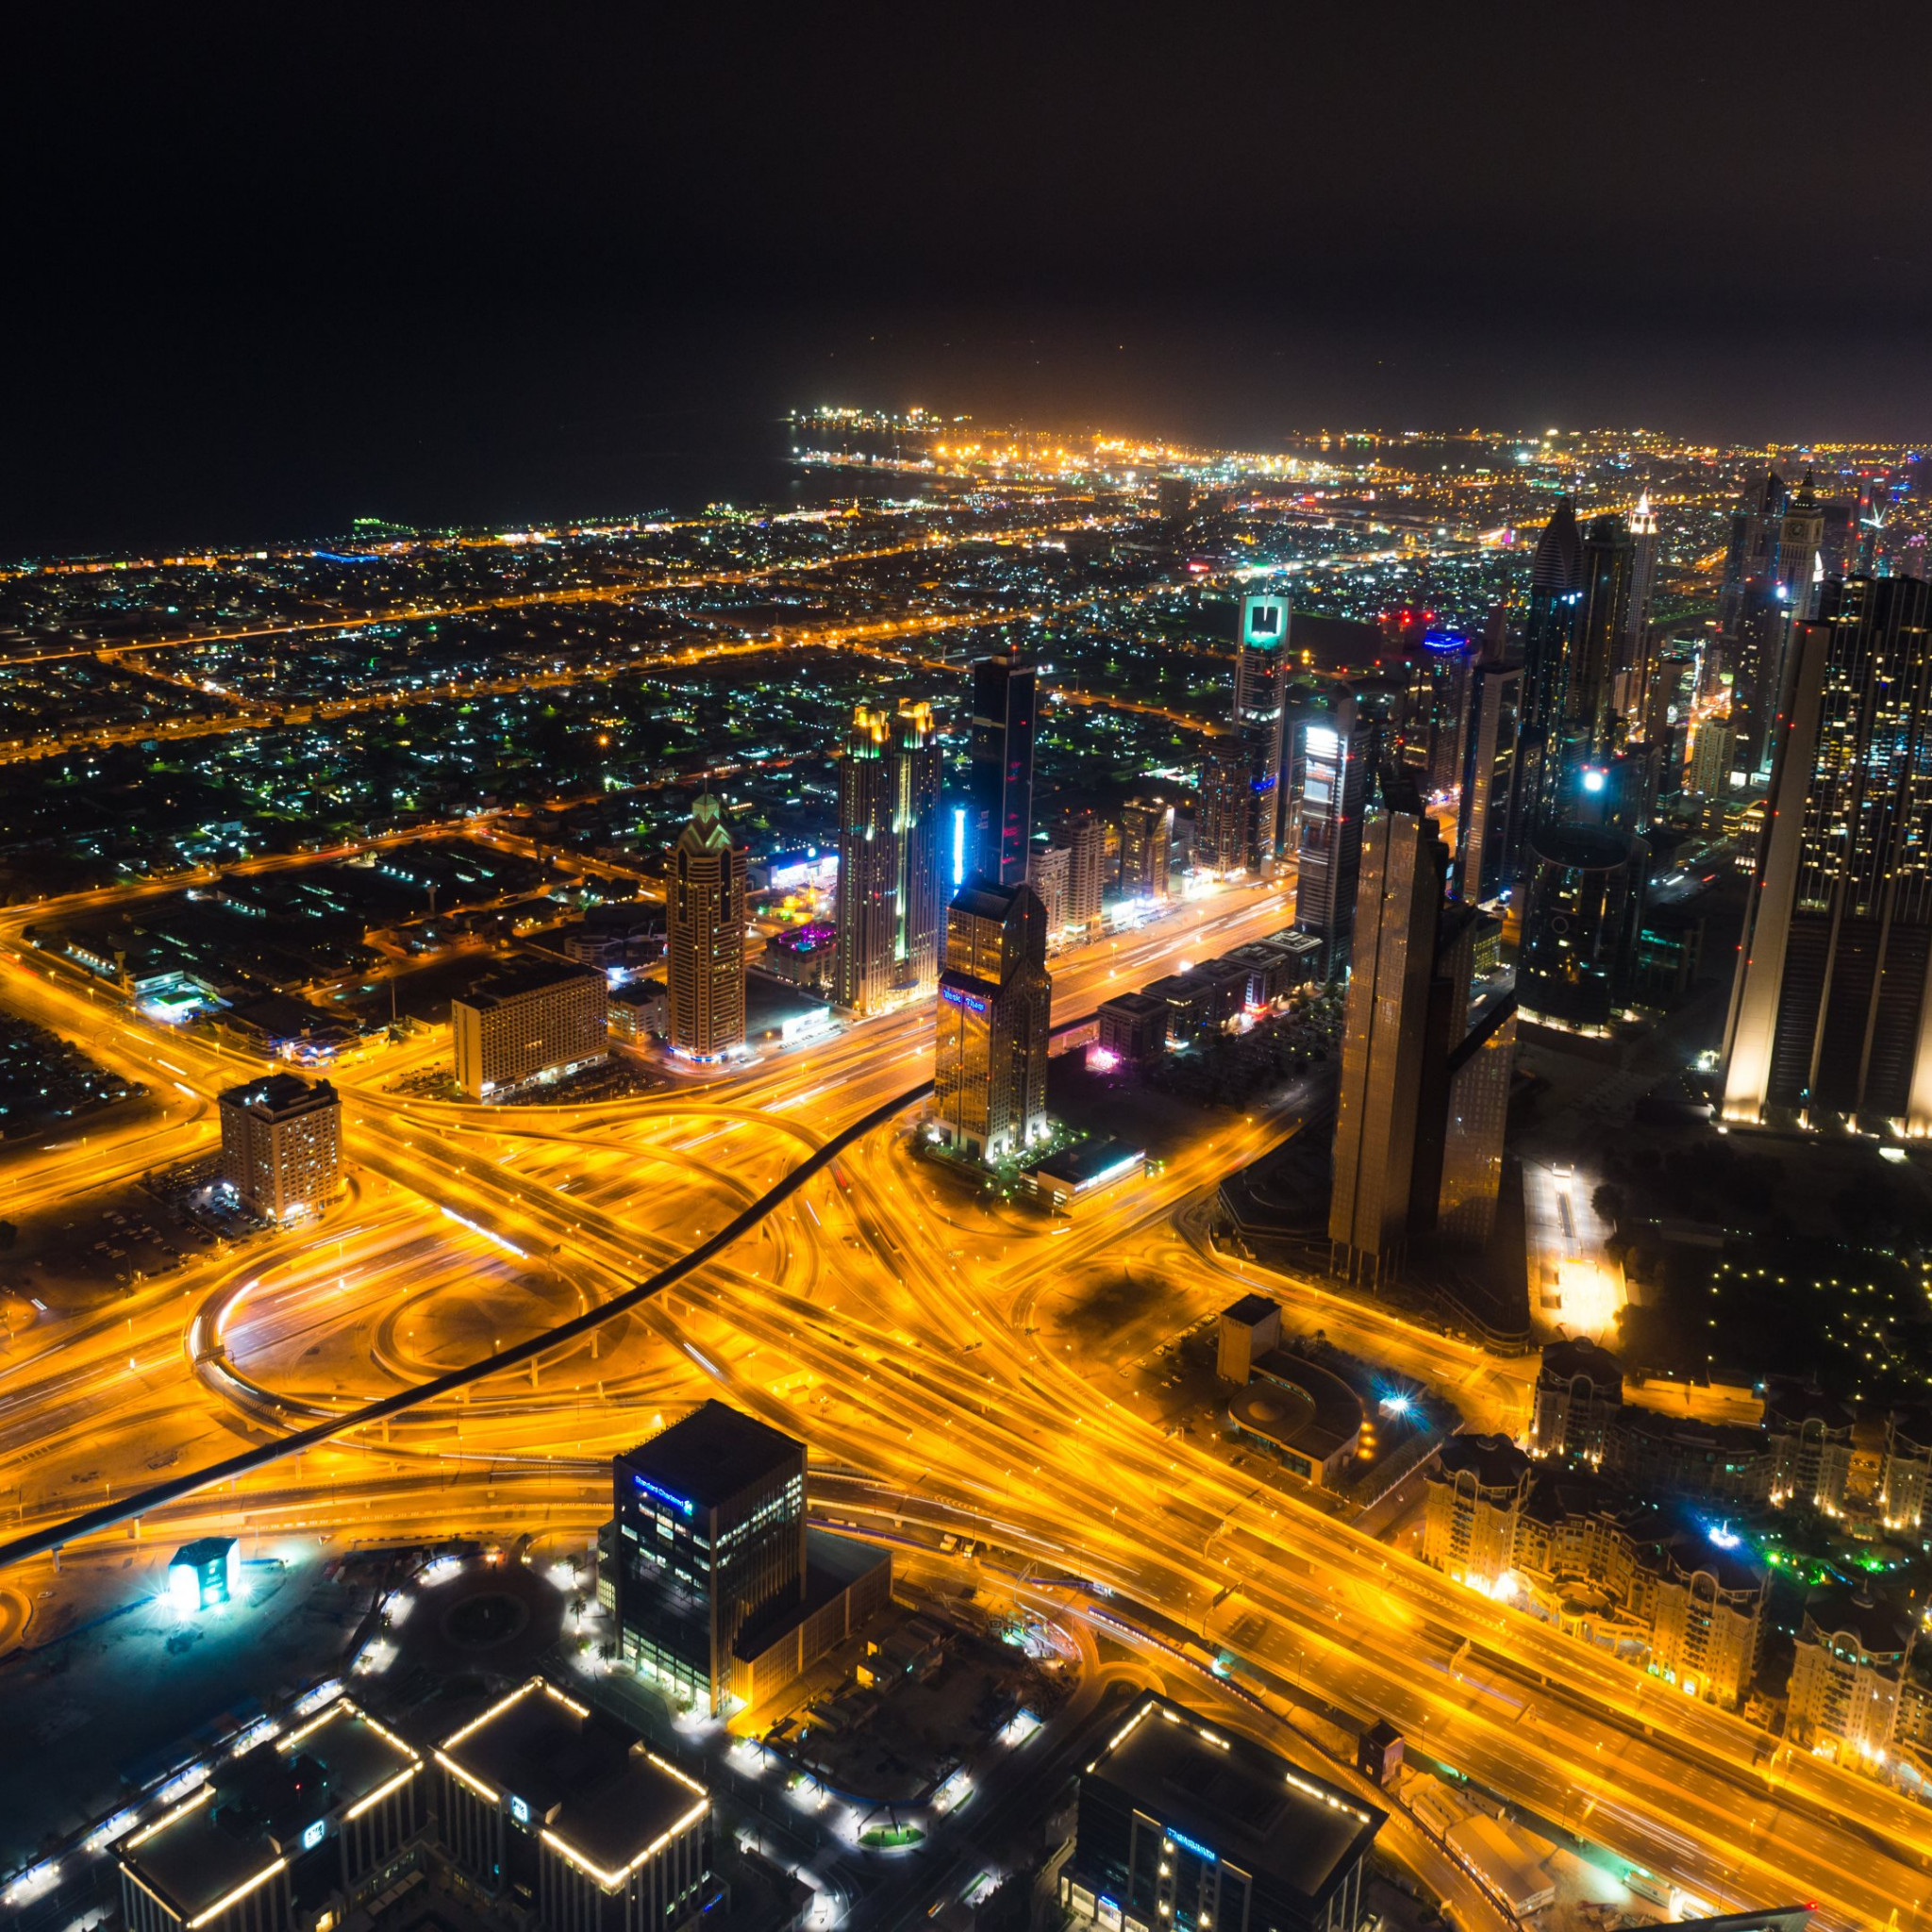 Dubai landscape by night | 2048x2048 wallpaper